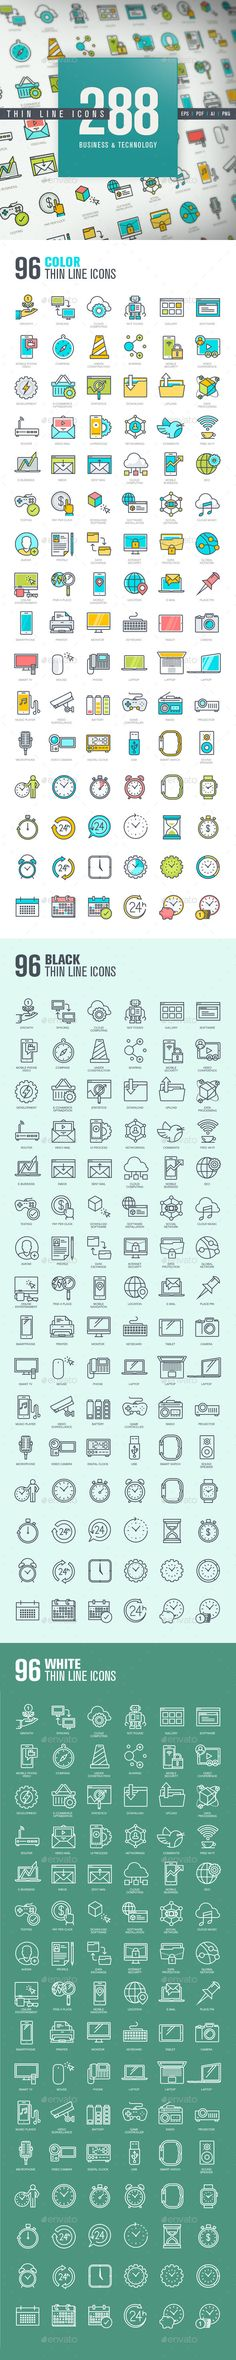 Set of Thin Line Icons for Business and Technology #design Download: http://graphicriver.net/item/set-of-thin-line-icons-for-business-and-technology/12119248?ref=ksioks